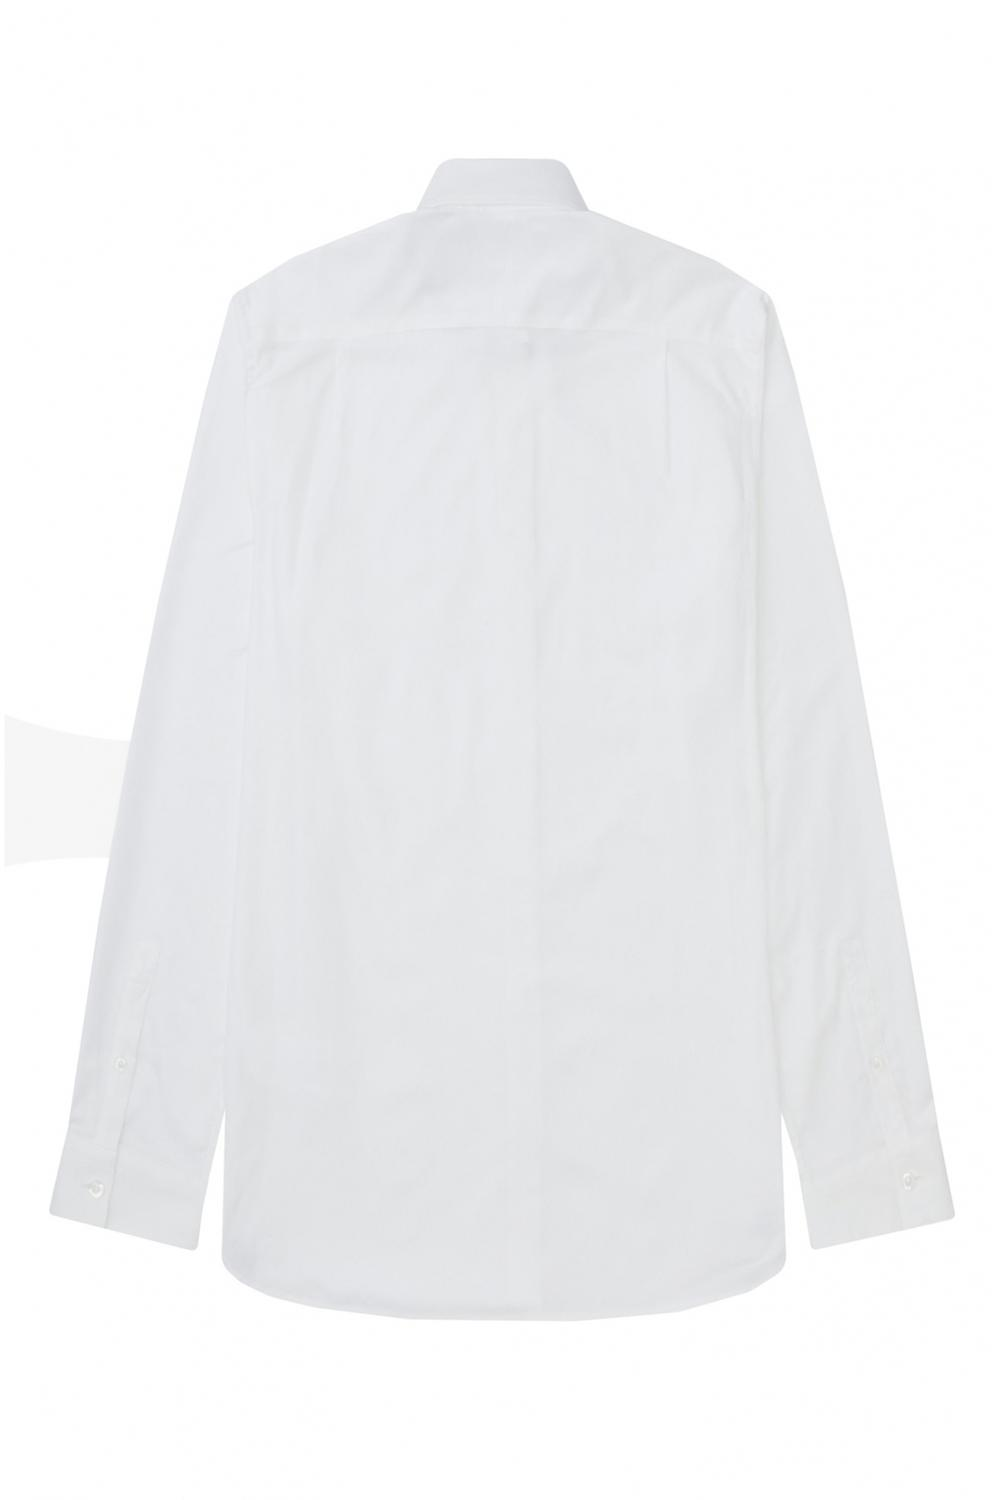 Fred Perry Oxford Long Sleeved Shirt White